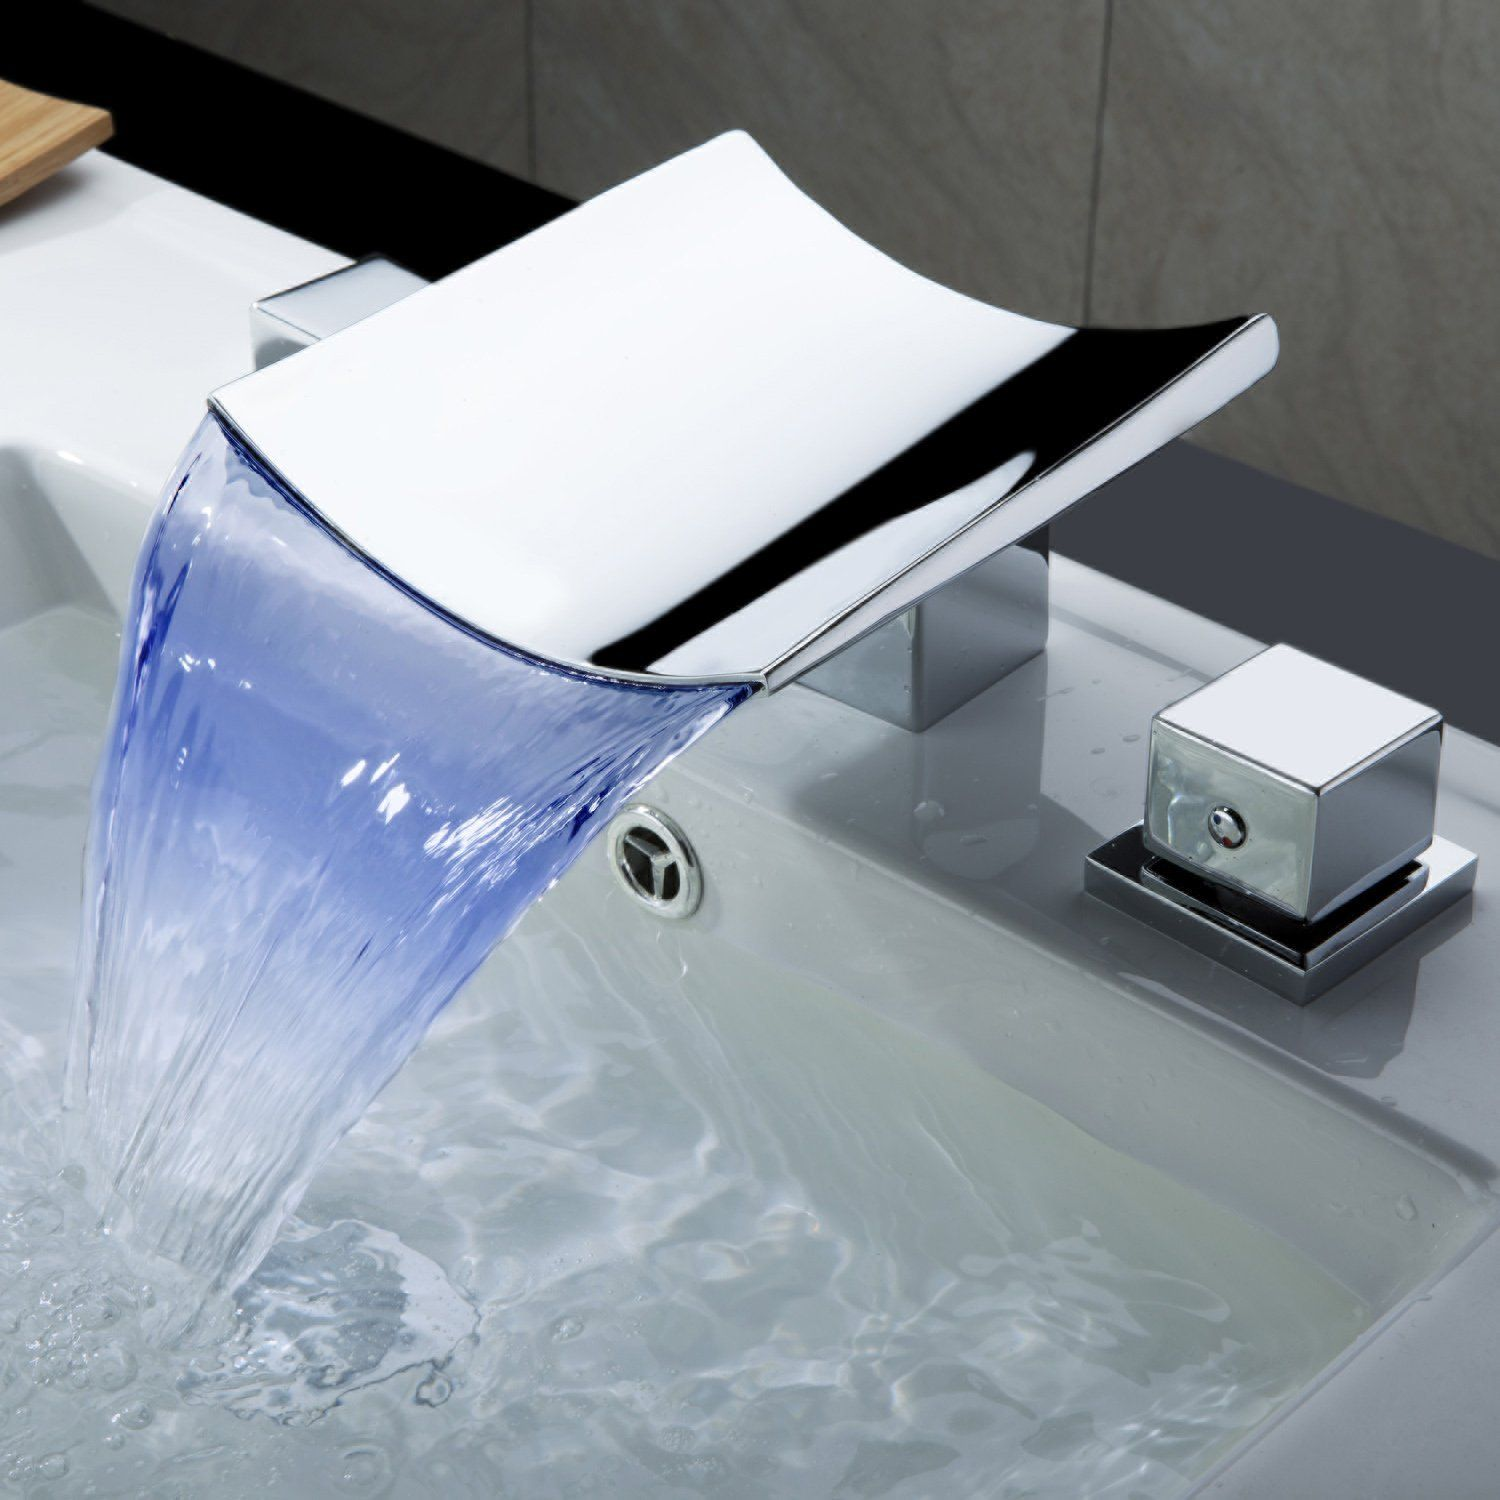 Superb Waterfall Design For Modern Bathroom Faucets With Glossy